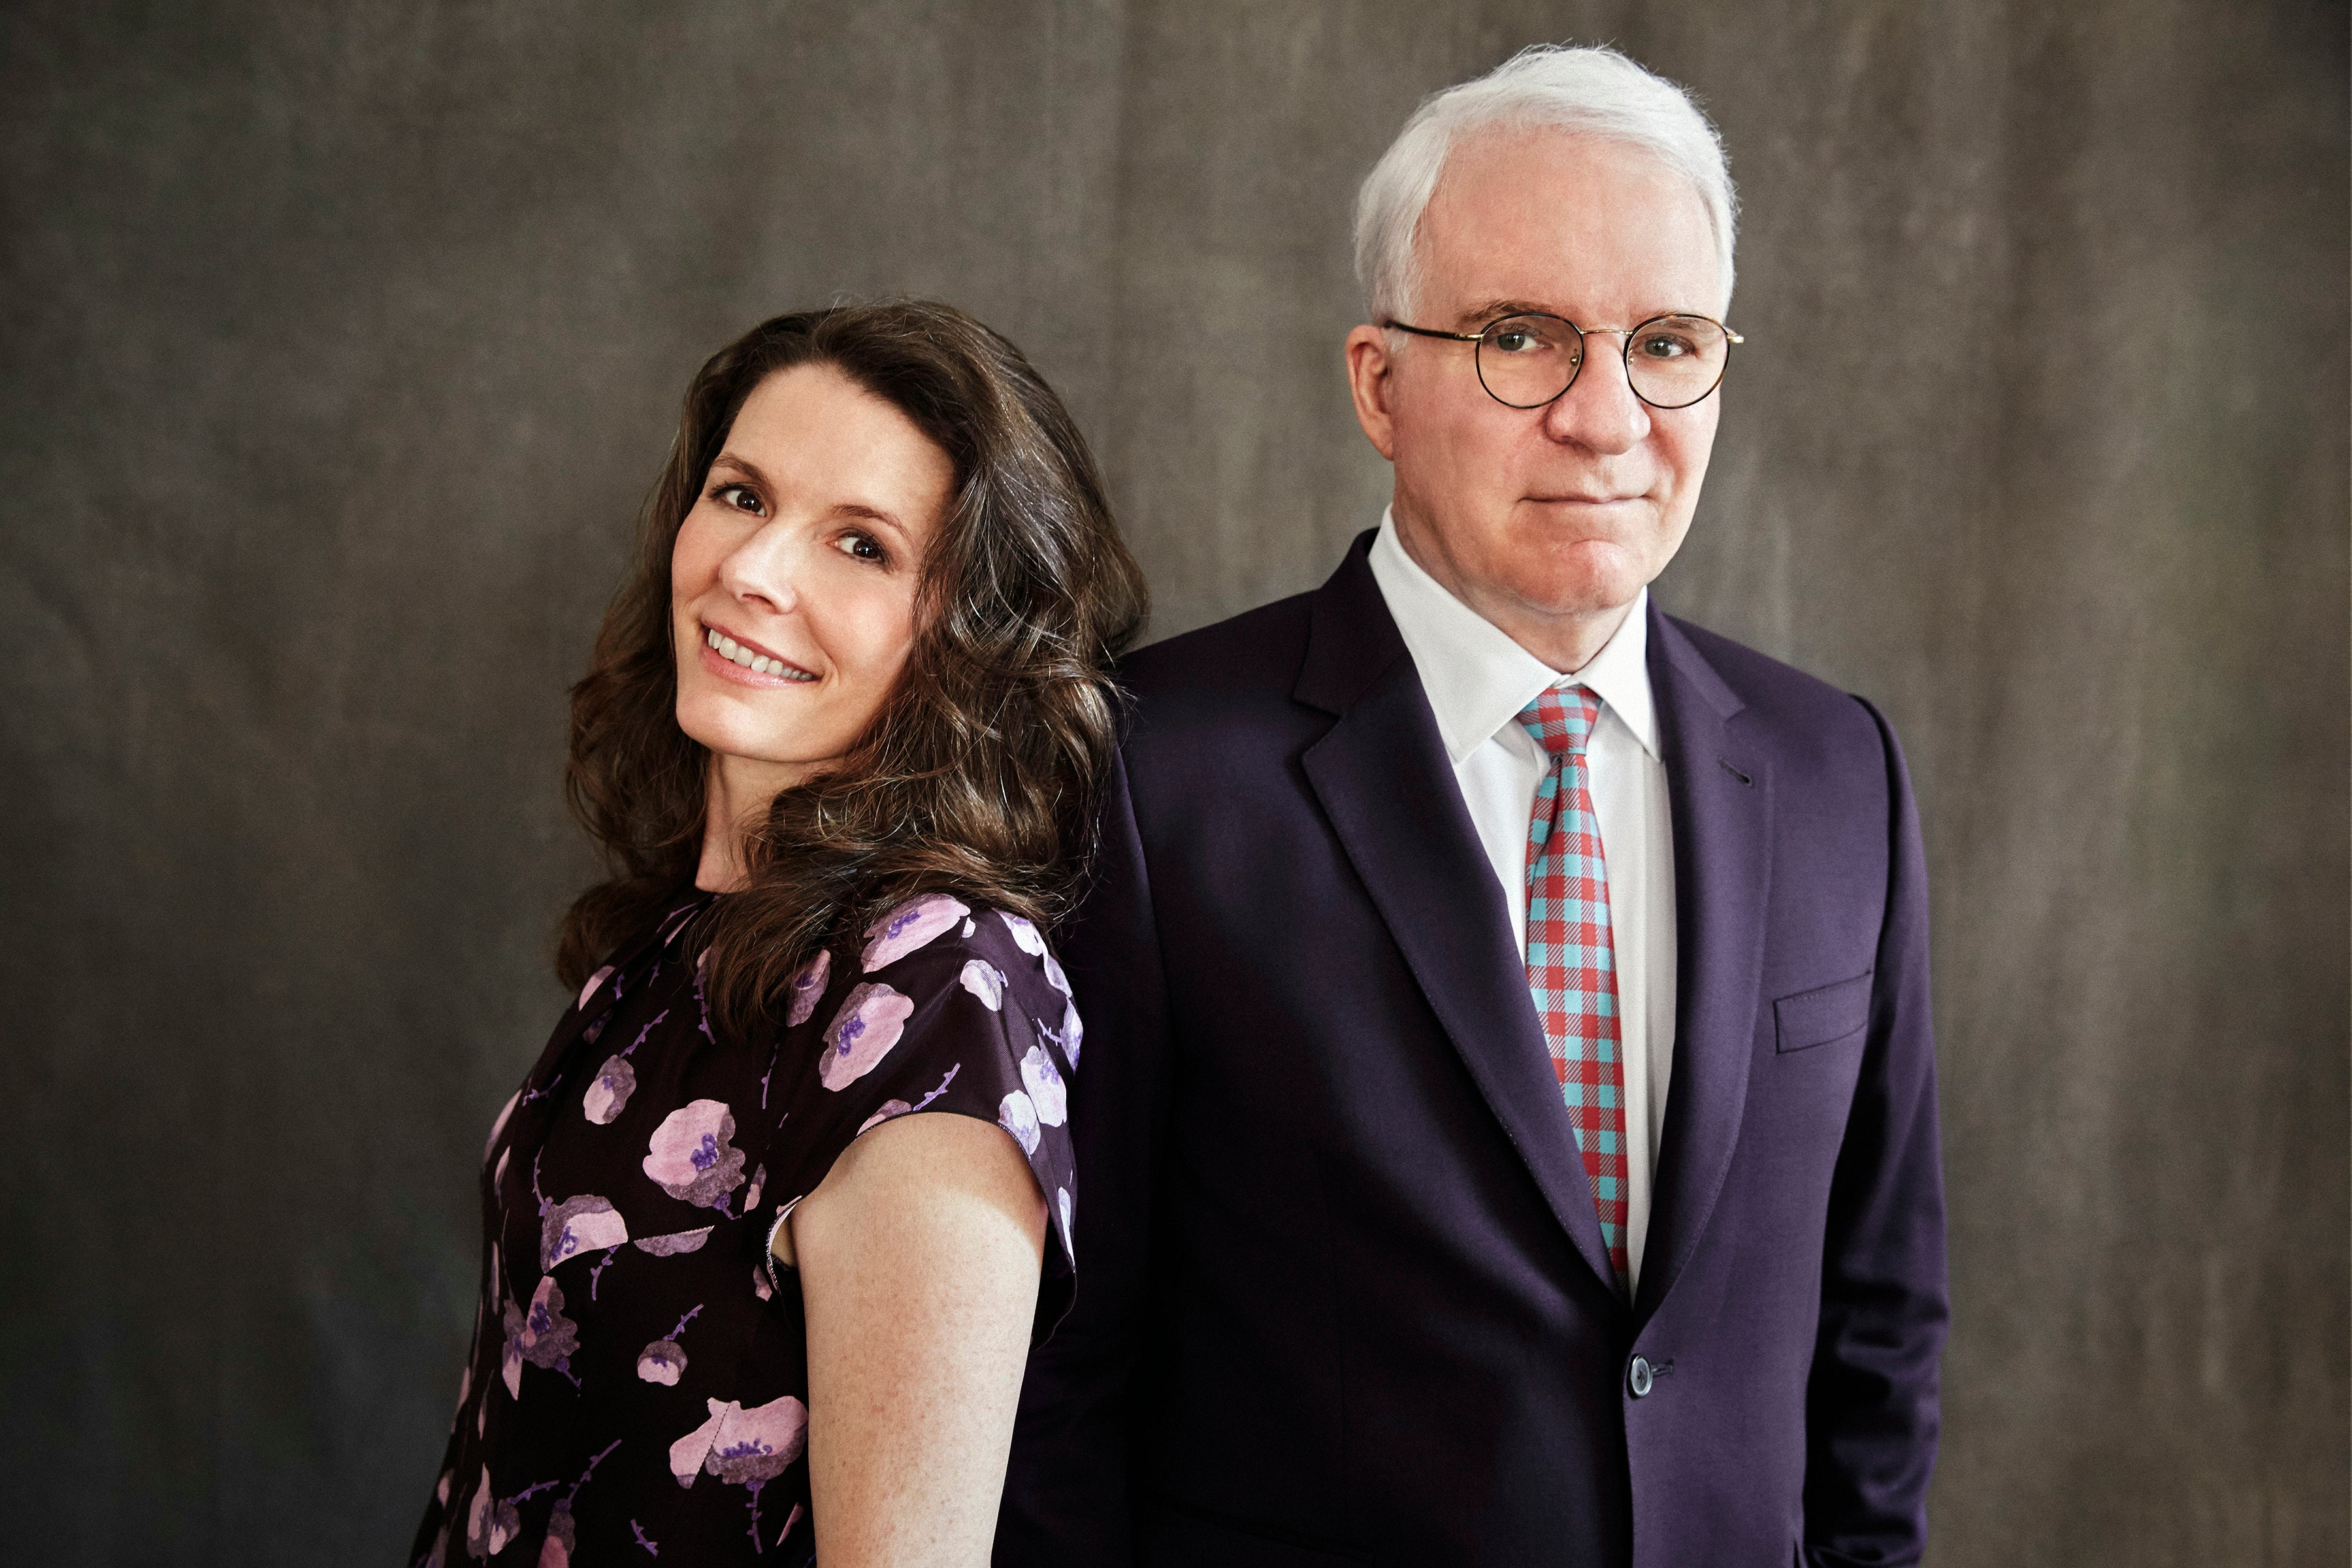 MAIN - Edie Brickell and Steve Martin (photo by Danny Clinch).jpg